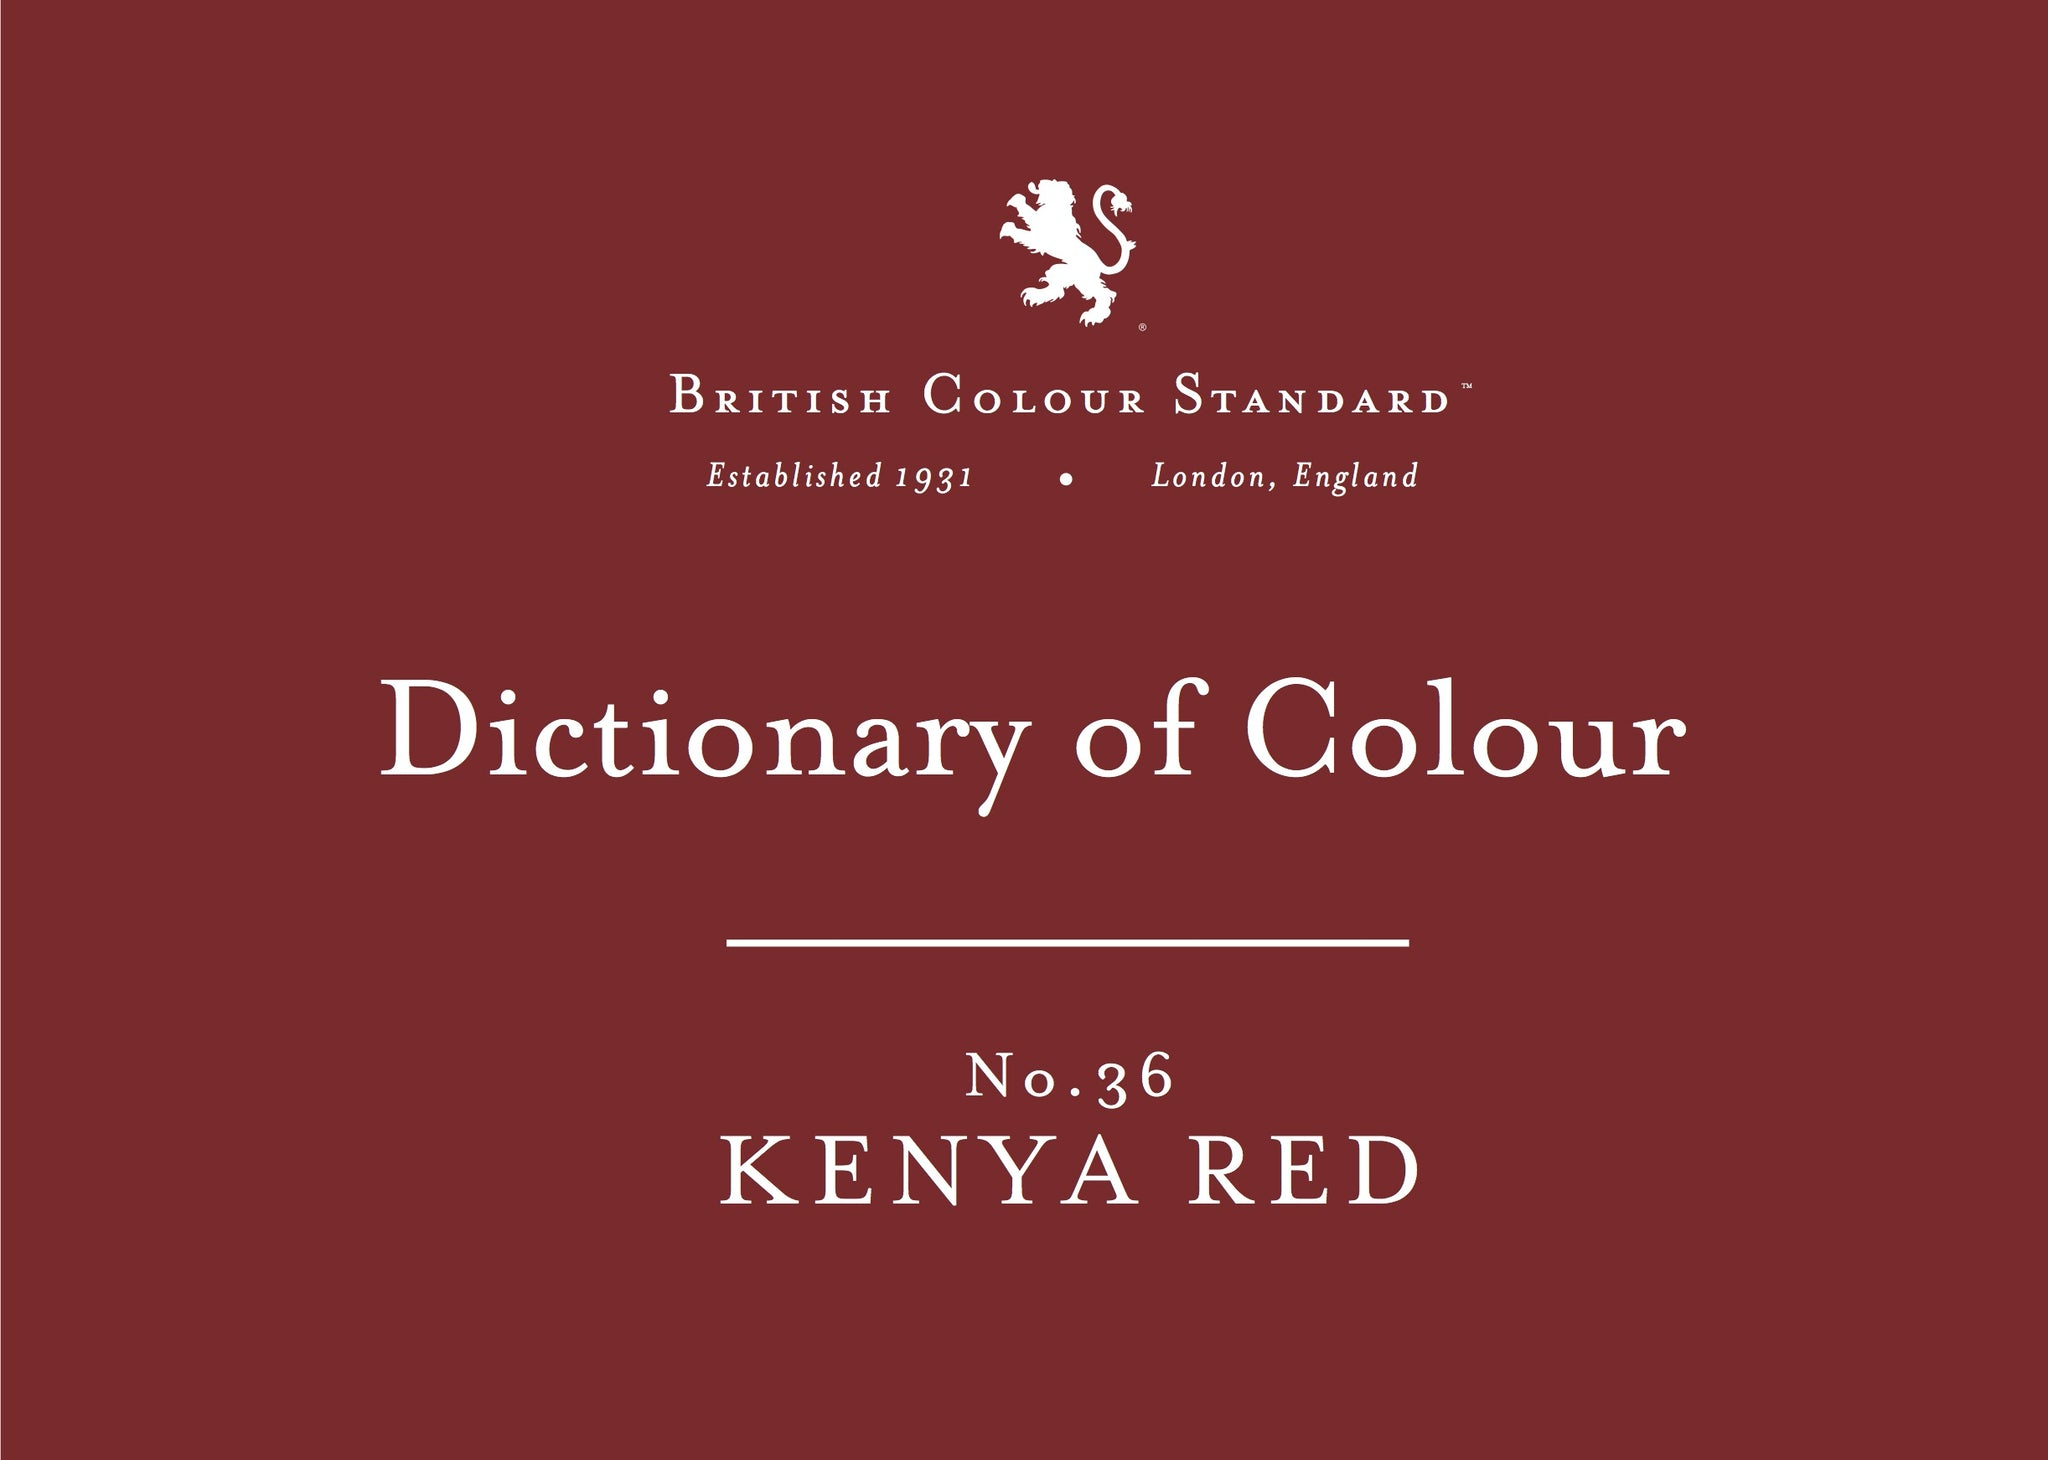 BRITISH COLOUR STANDARD - Kenya Red No. 36